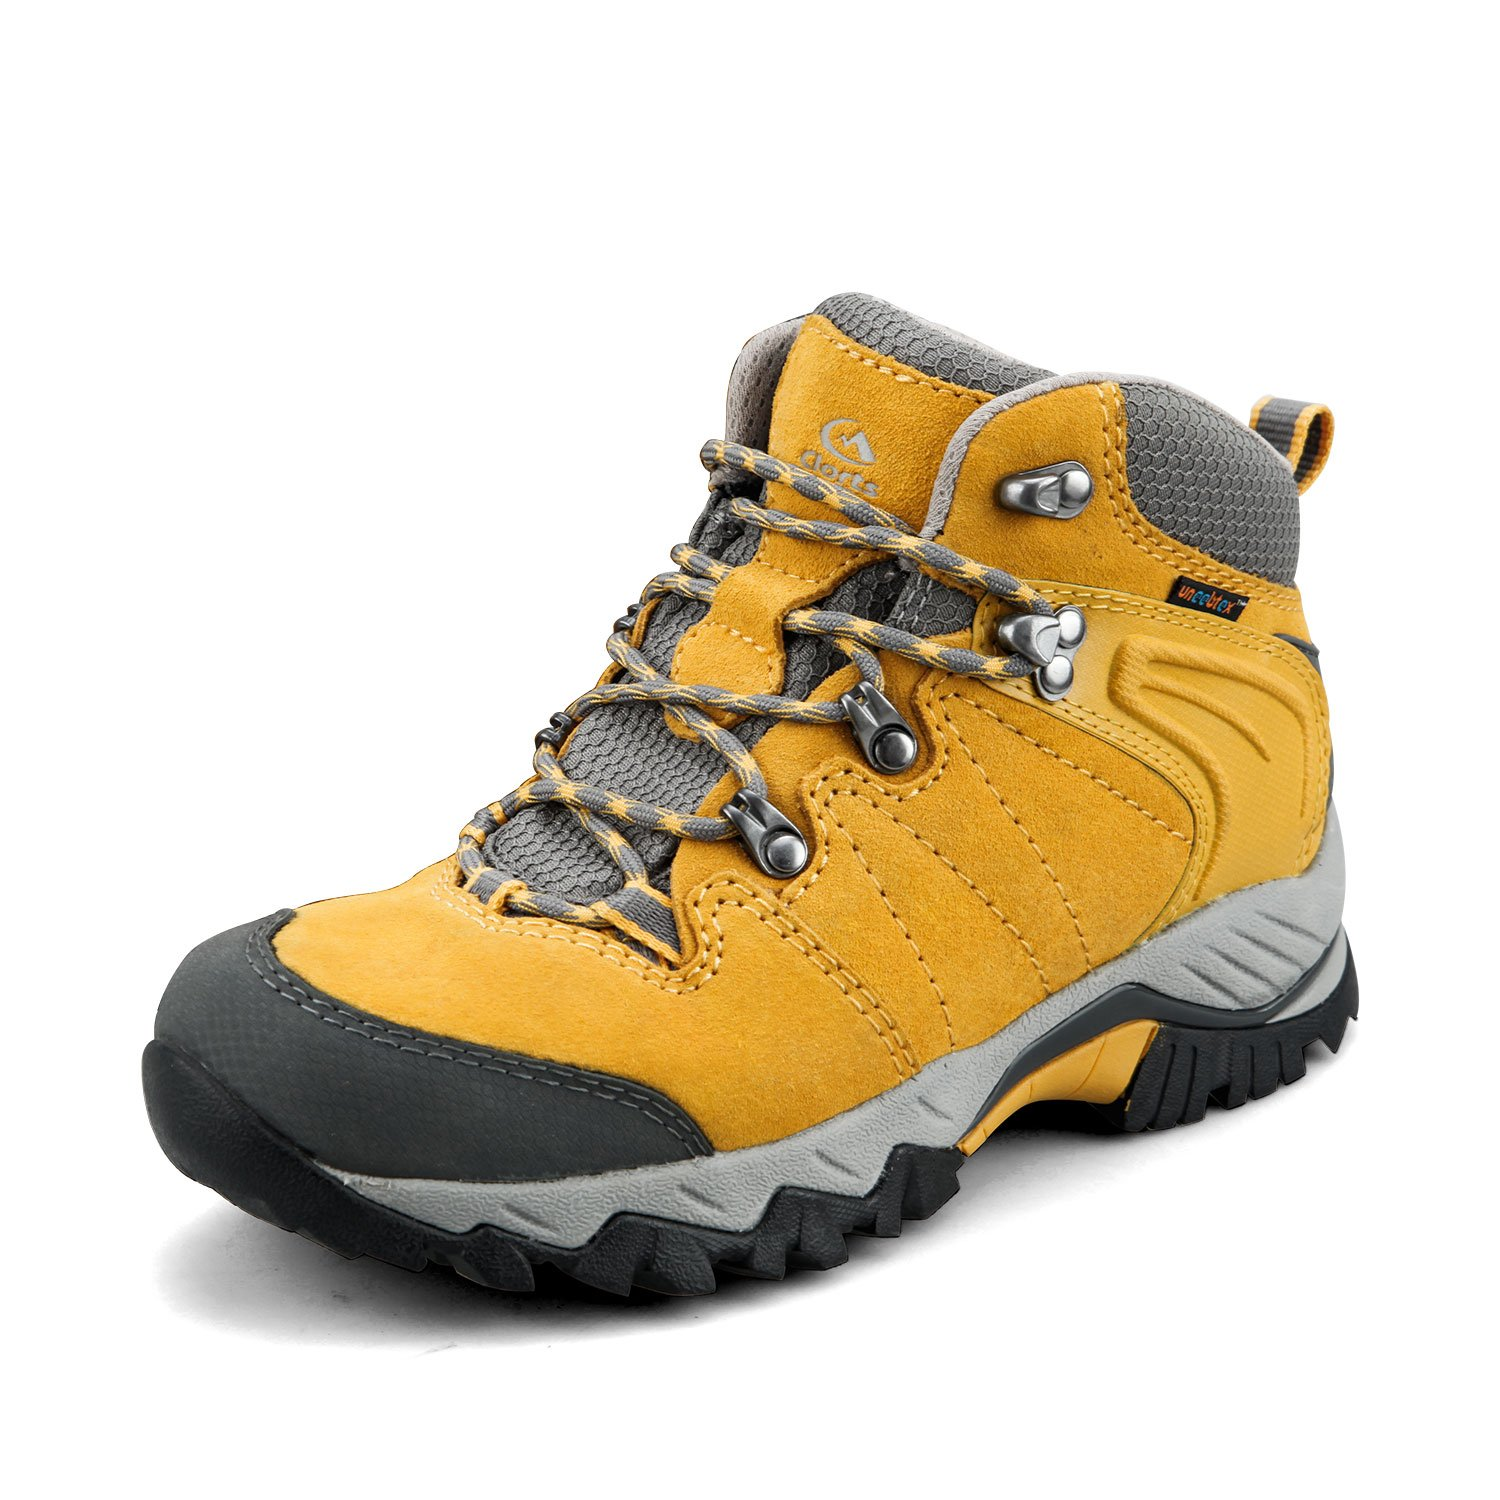 Clorts Women's Hiker Leather Waterproof Hiking Boot Outdoor Backpacking Shoe Yellow HKM-822F US5.5